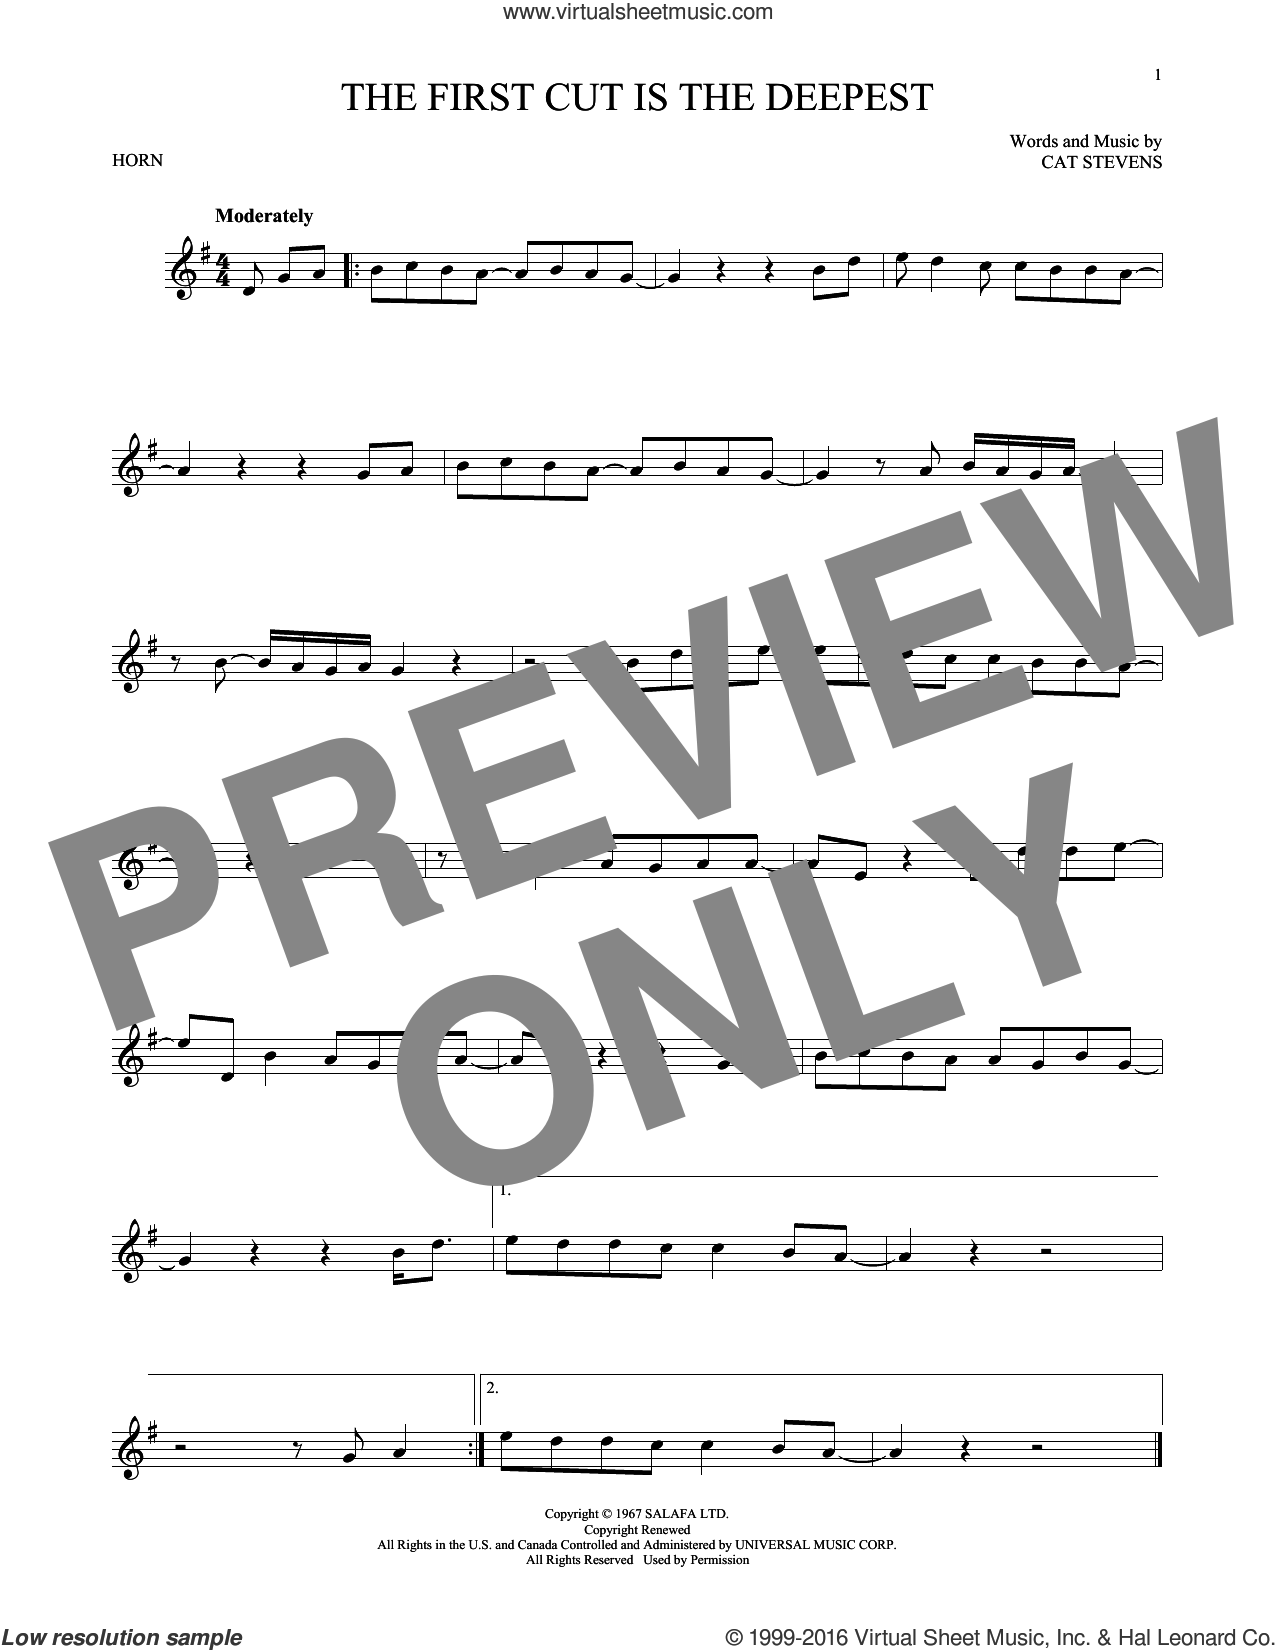 The First Cut Is The Deepest sheet music for horn solo by Cat Stevens, Rod Stewart and Sheryl Crow, intermediate skill level